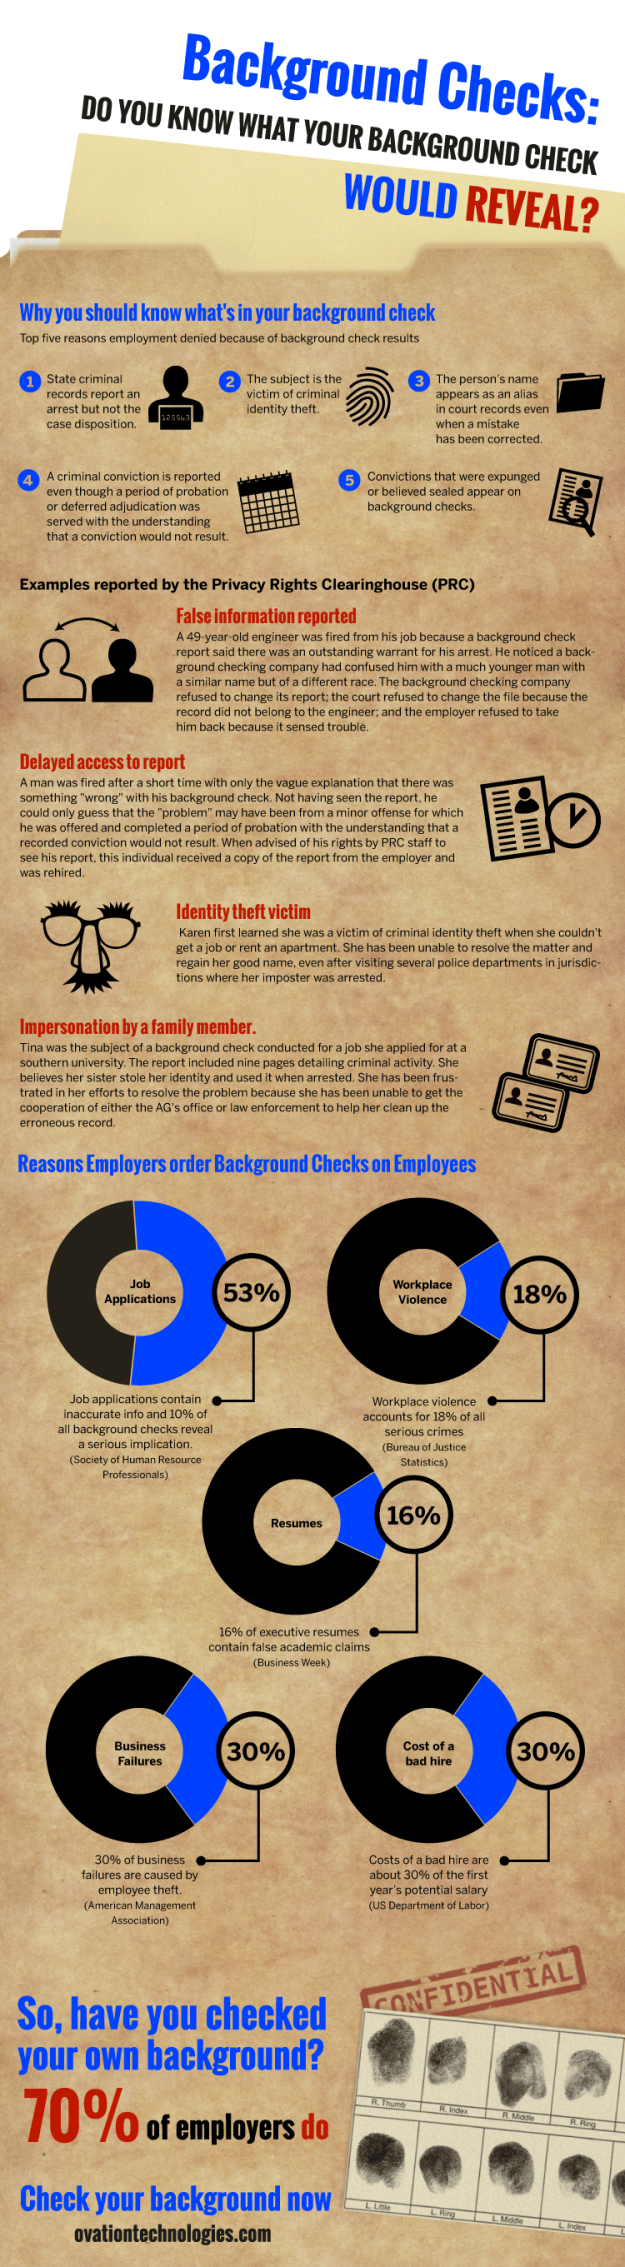 Have You Seen Your Own Background Check? background check infographic, personal background check, my background check